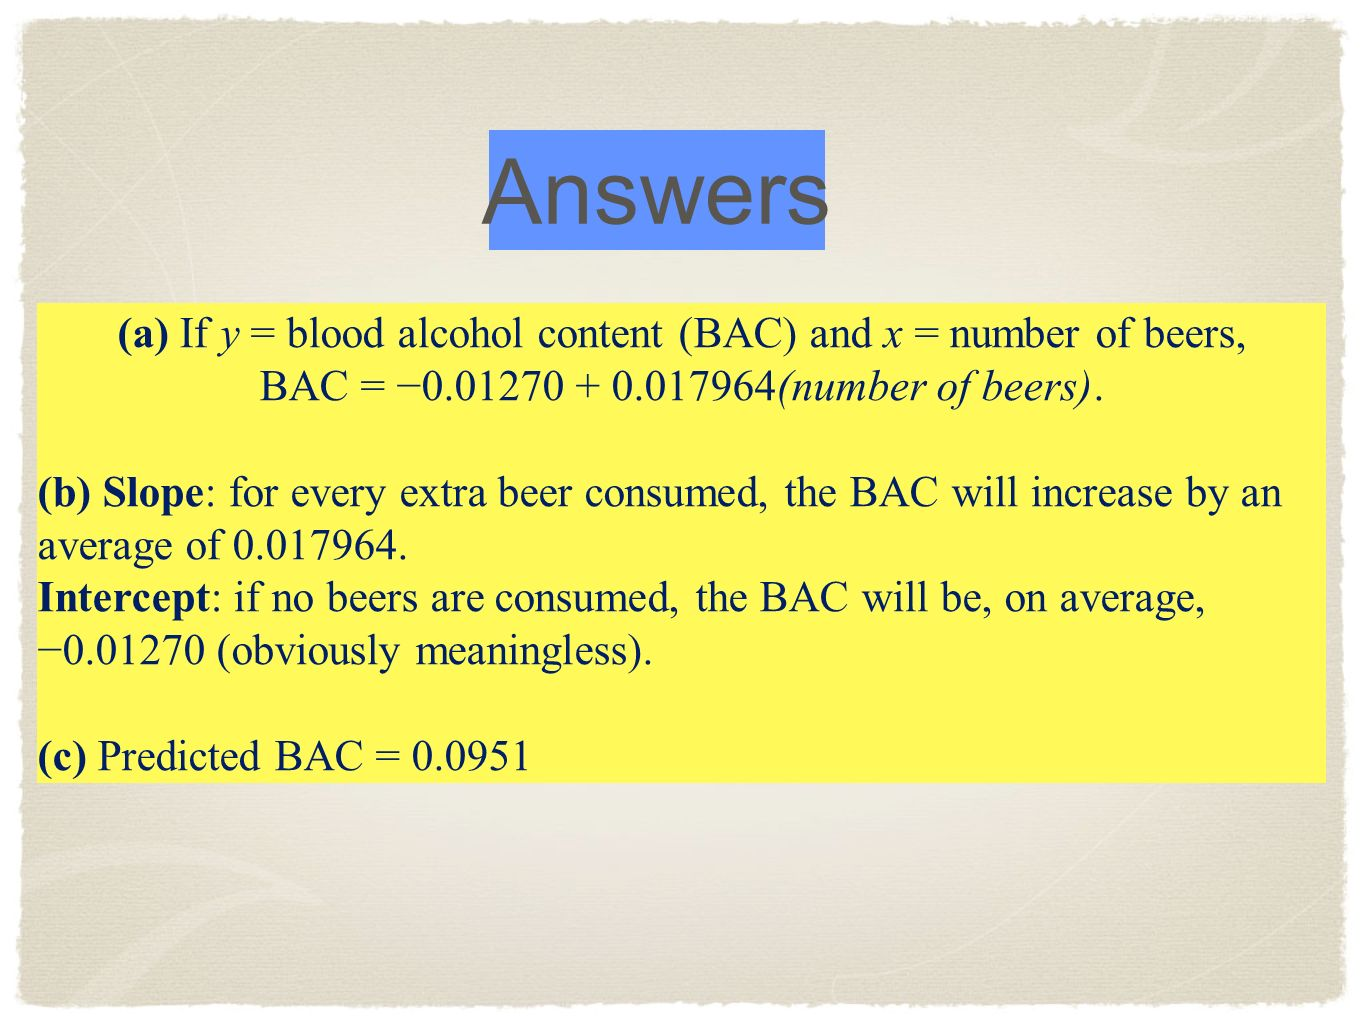 Answers (a) If y = blood alcohol content (BAC) and x = number of beers, BAC = −0.01270 + 0.017964(number of beers).